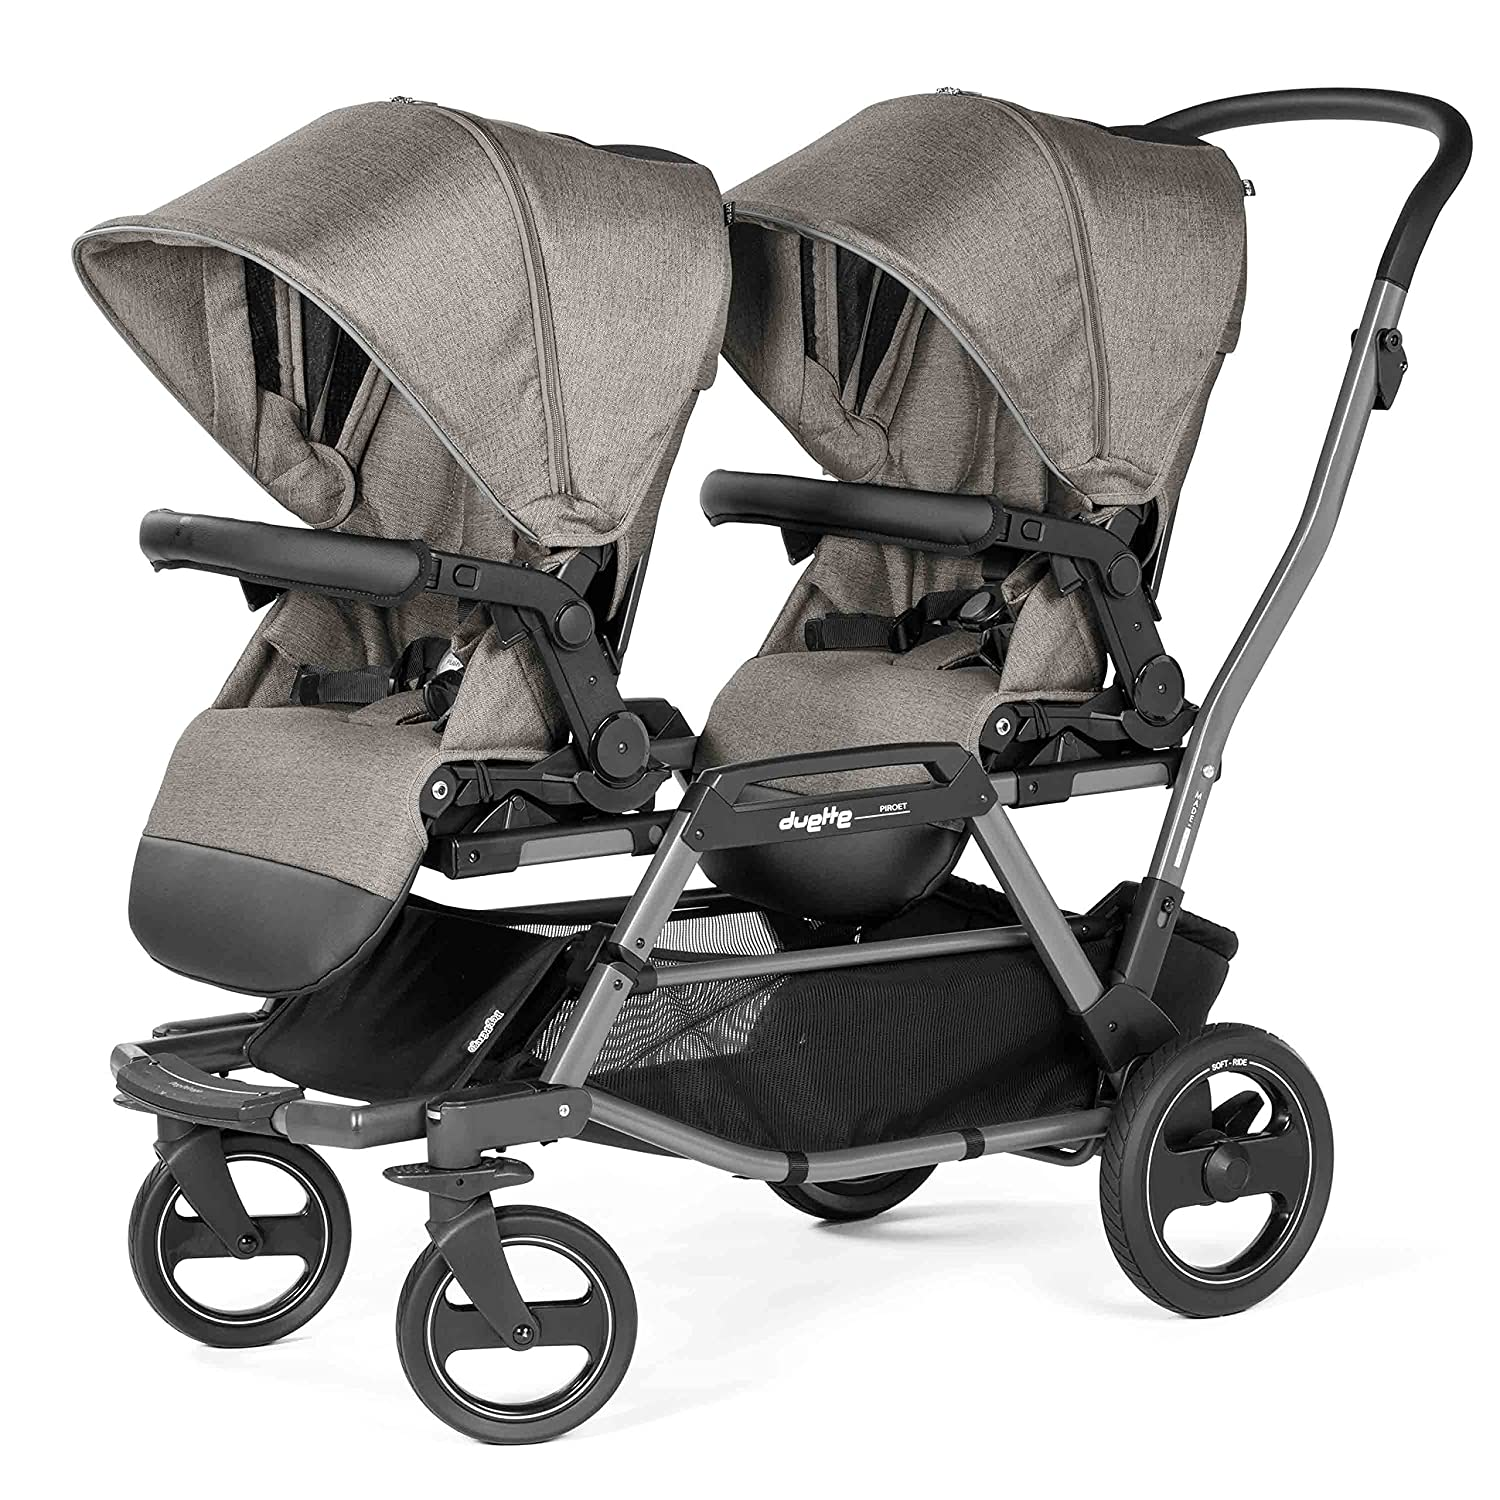 Peg Perego Max 70% OFF Duette Piroet quality assurance Grey Stroller City